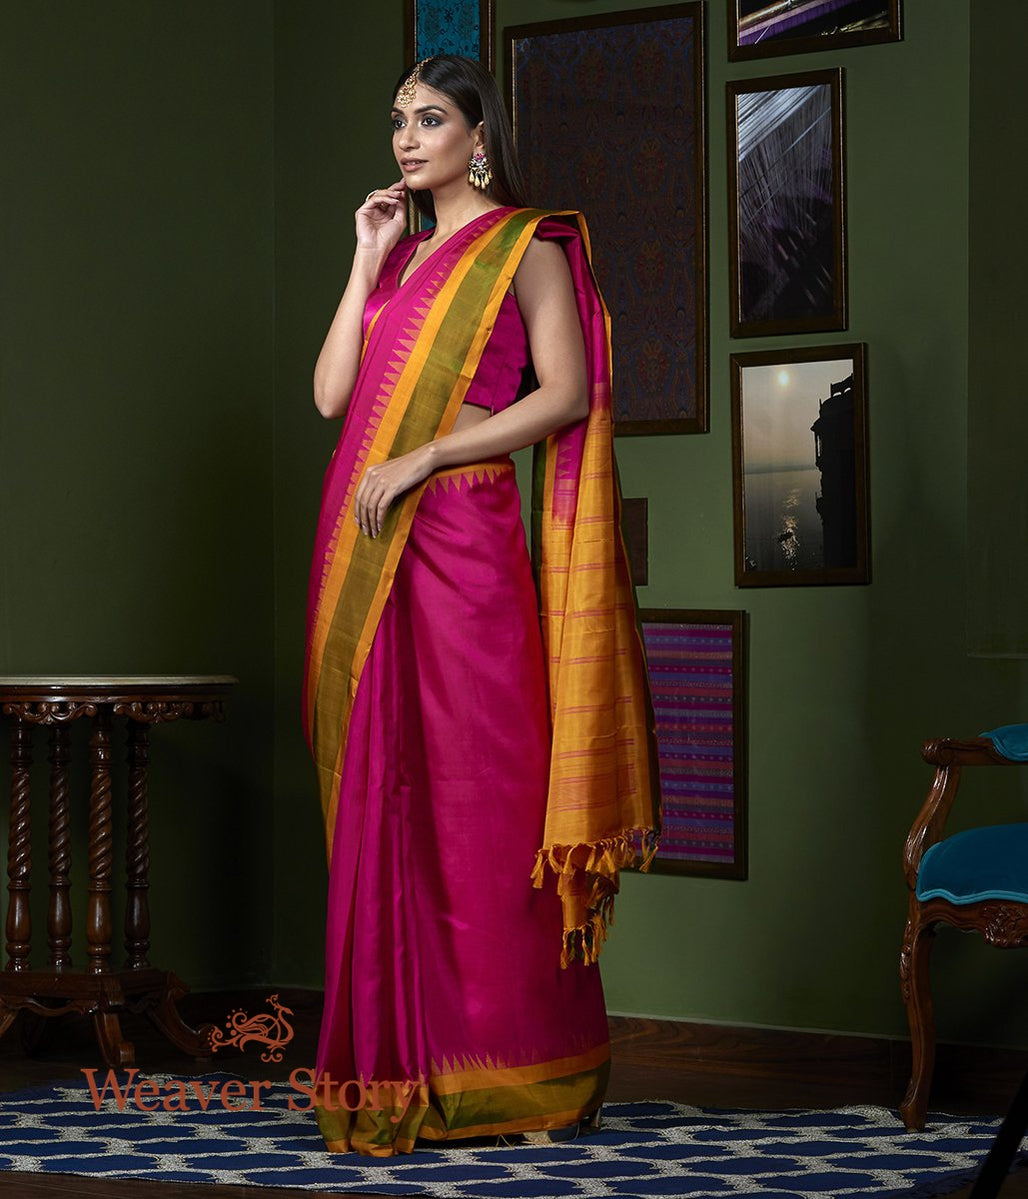 Handwoven Pink Kanjivaram Saree with Mustard Temple Border